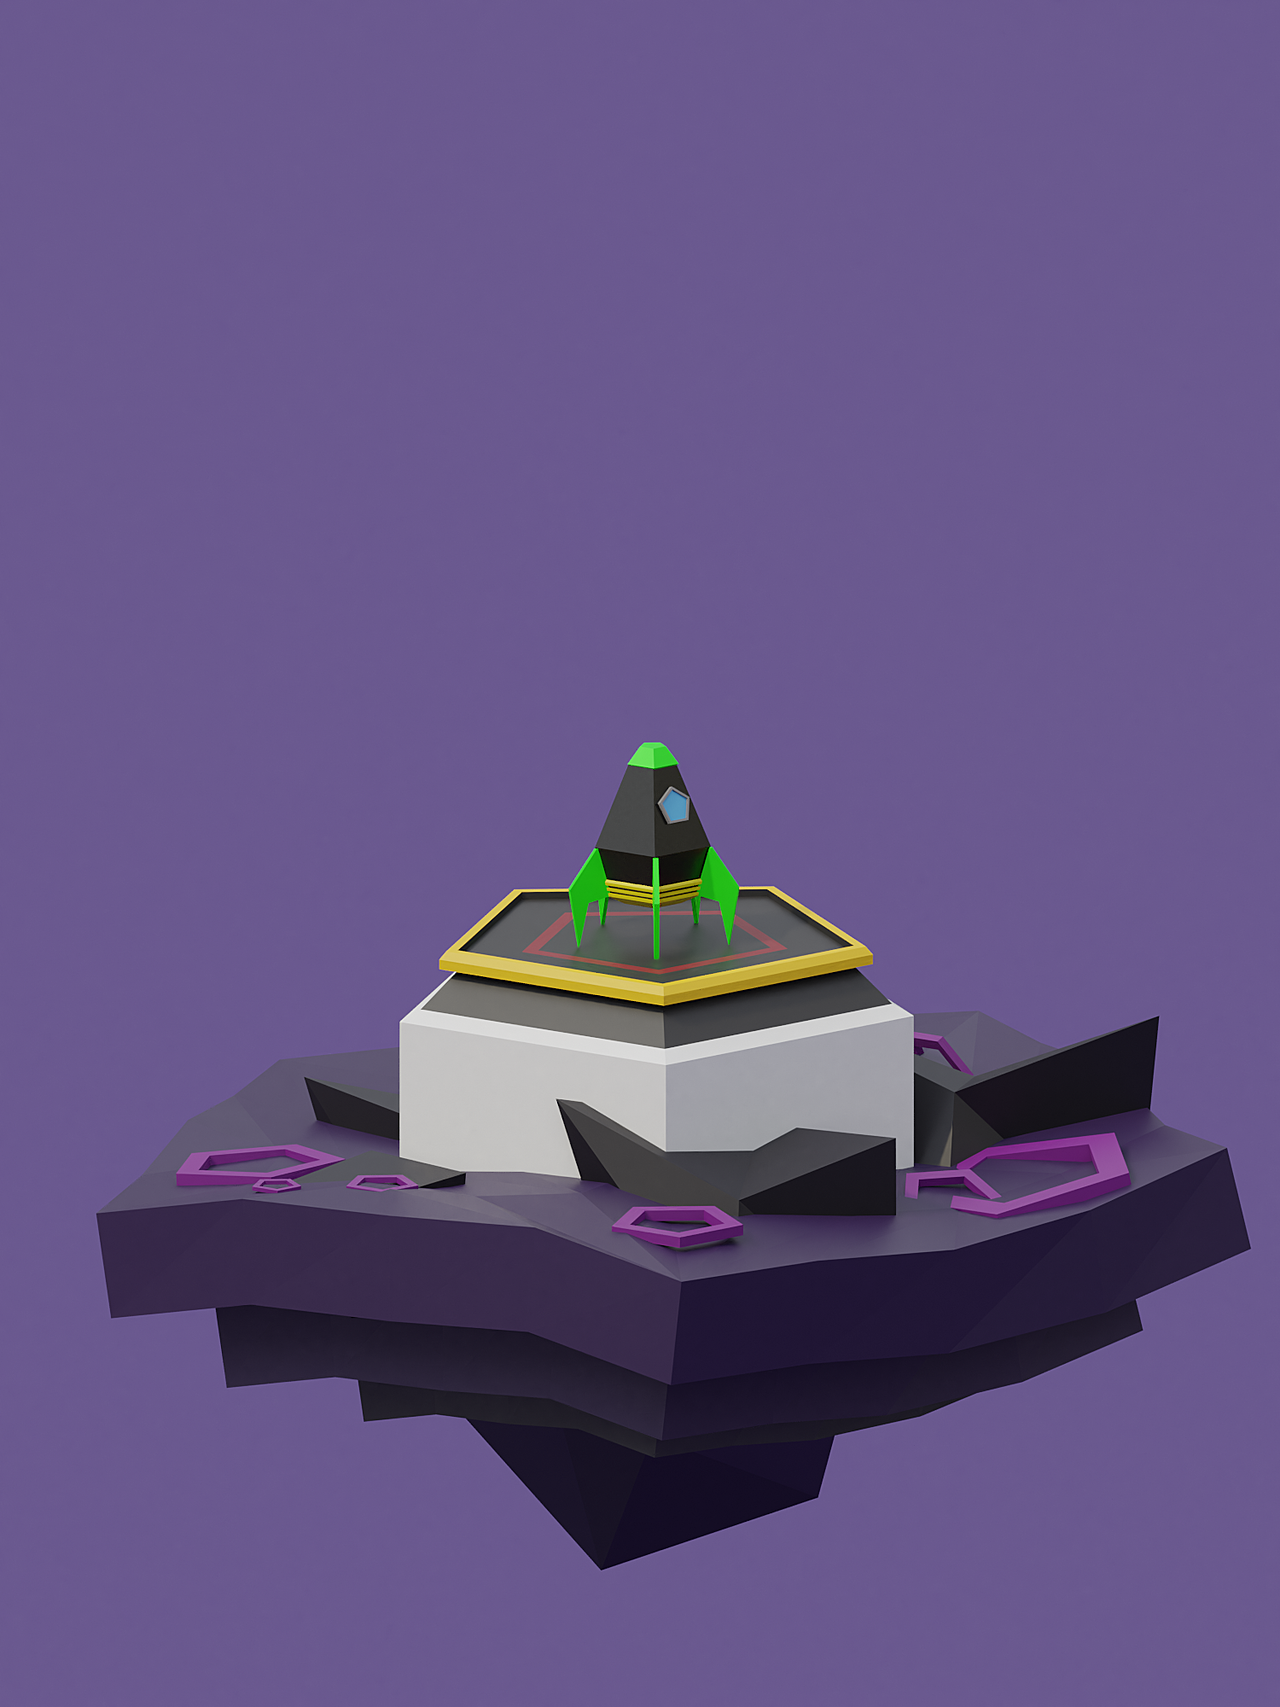 Completed Low Poly Rocket Course